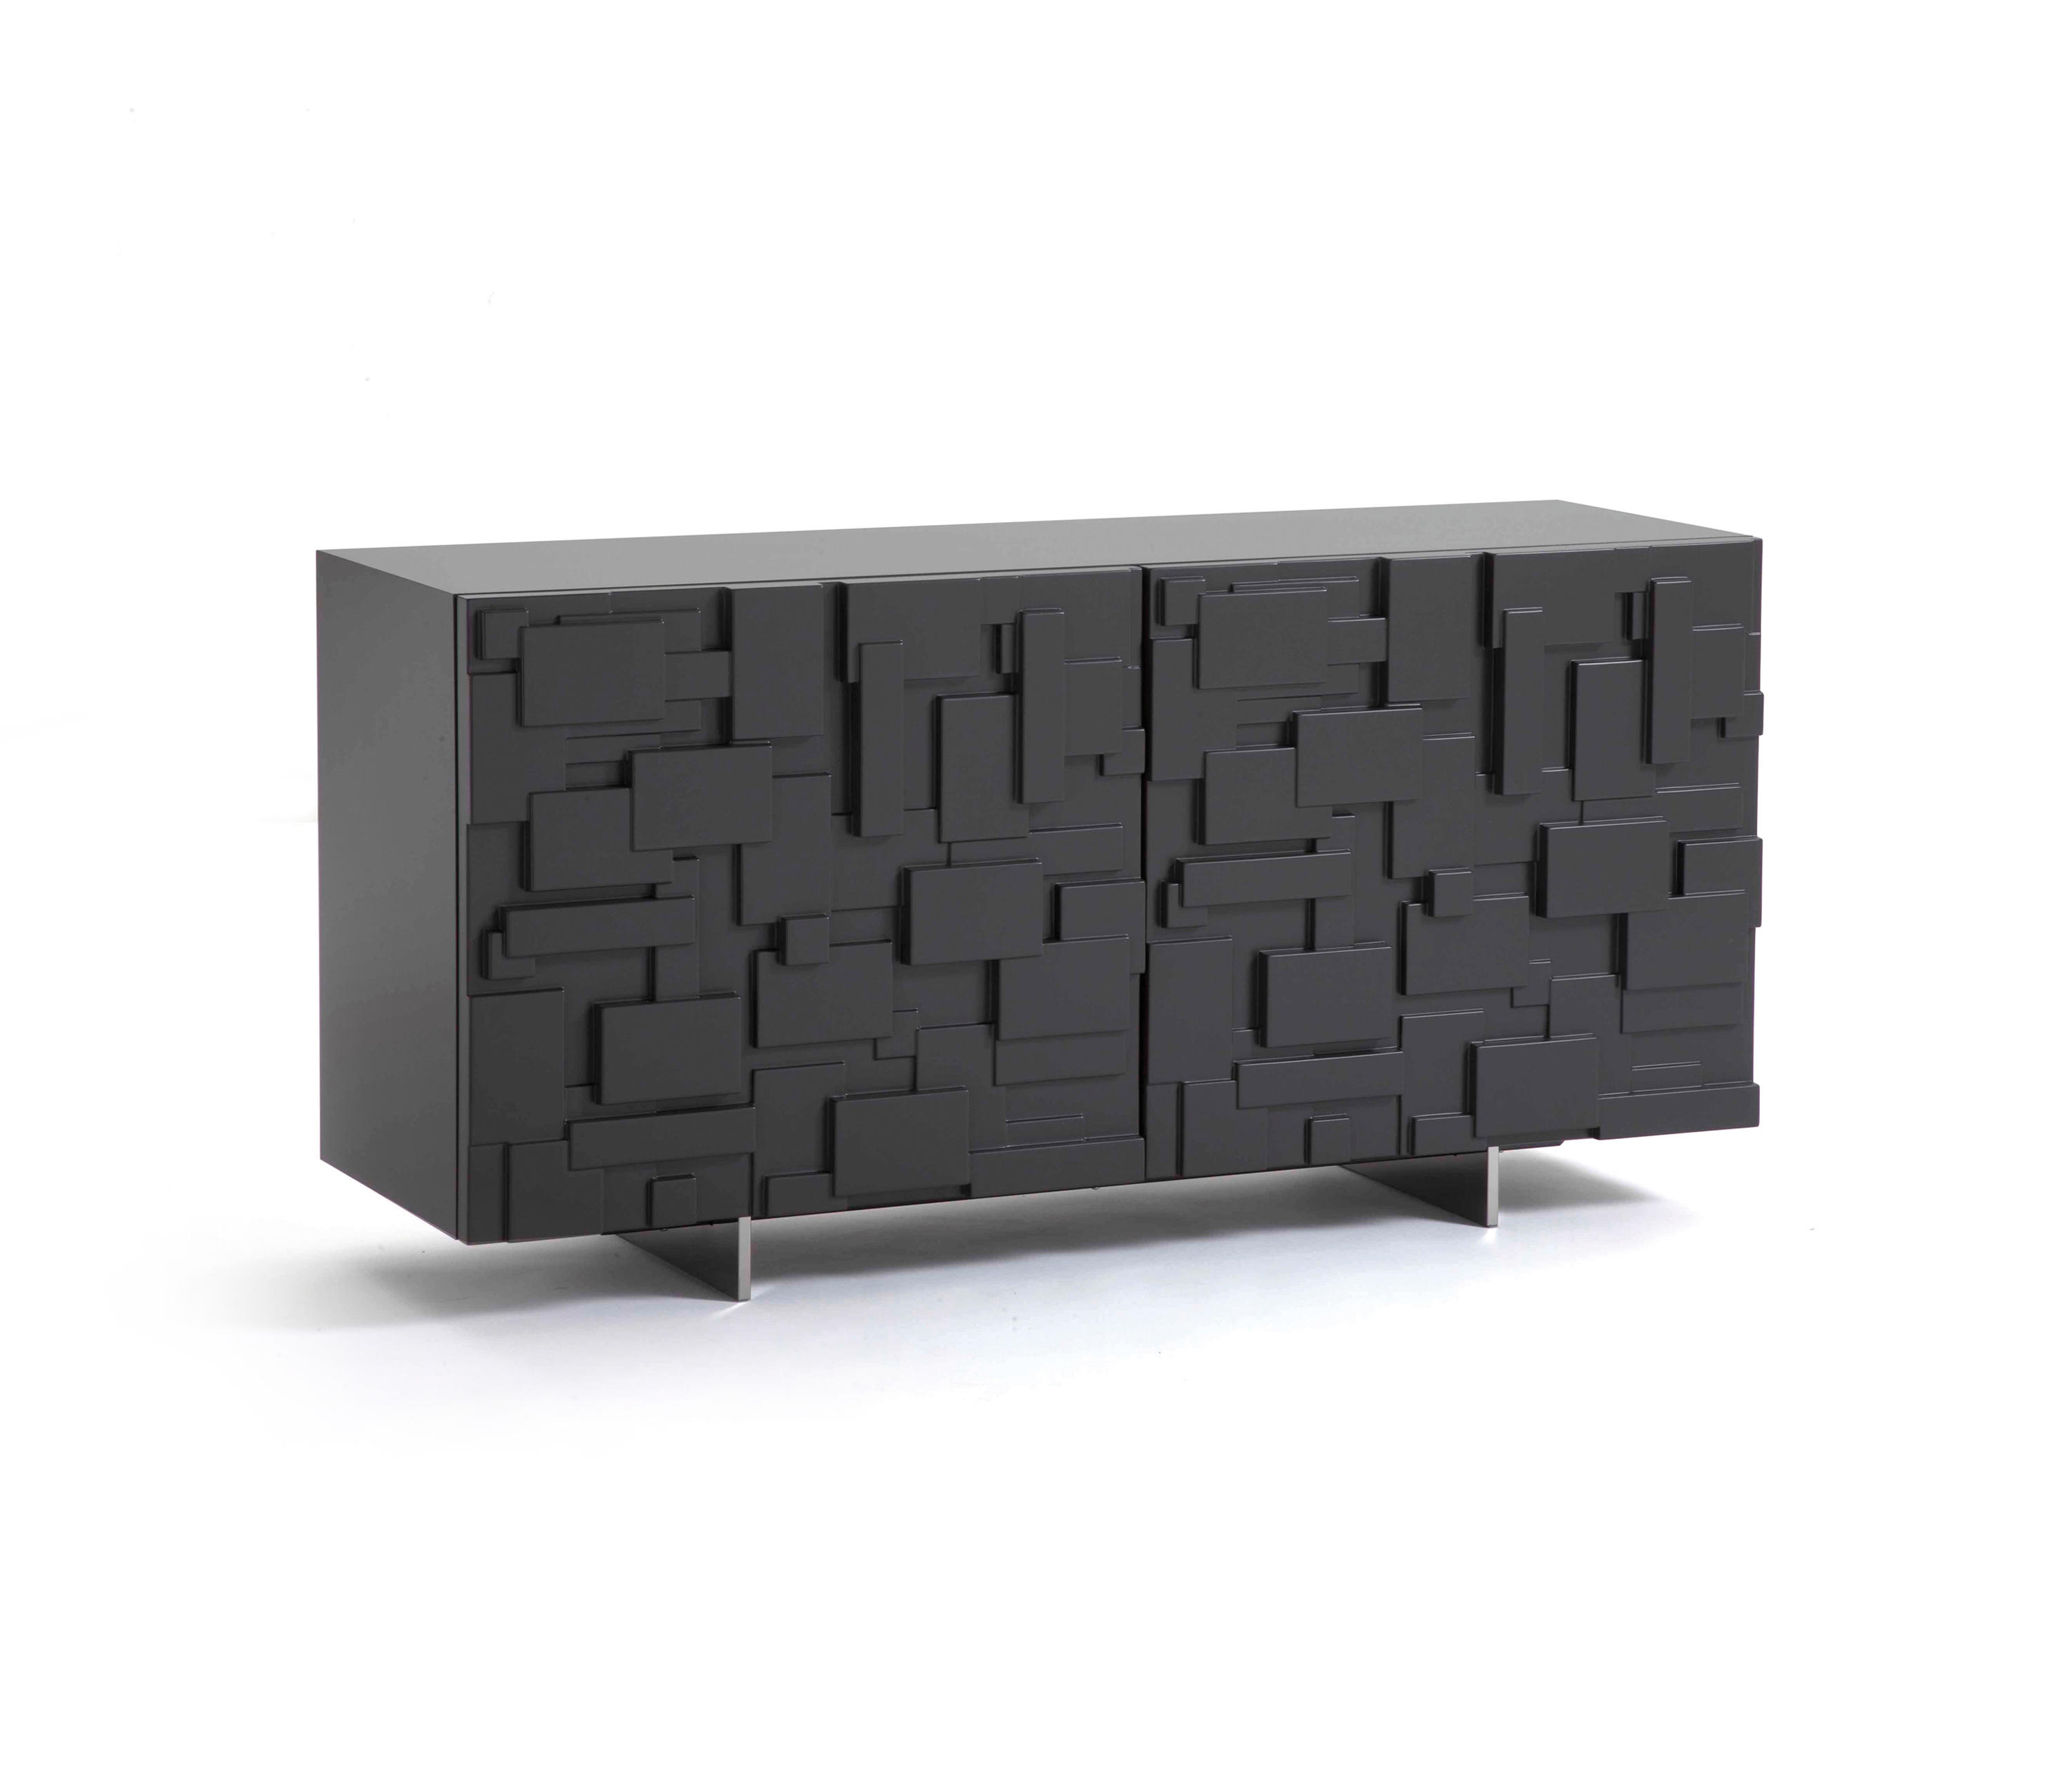 Labyrinth sideboards from cattelan italia architonic for City meuble catalogue